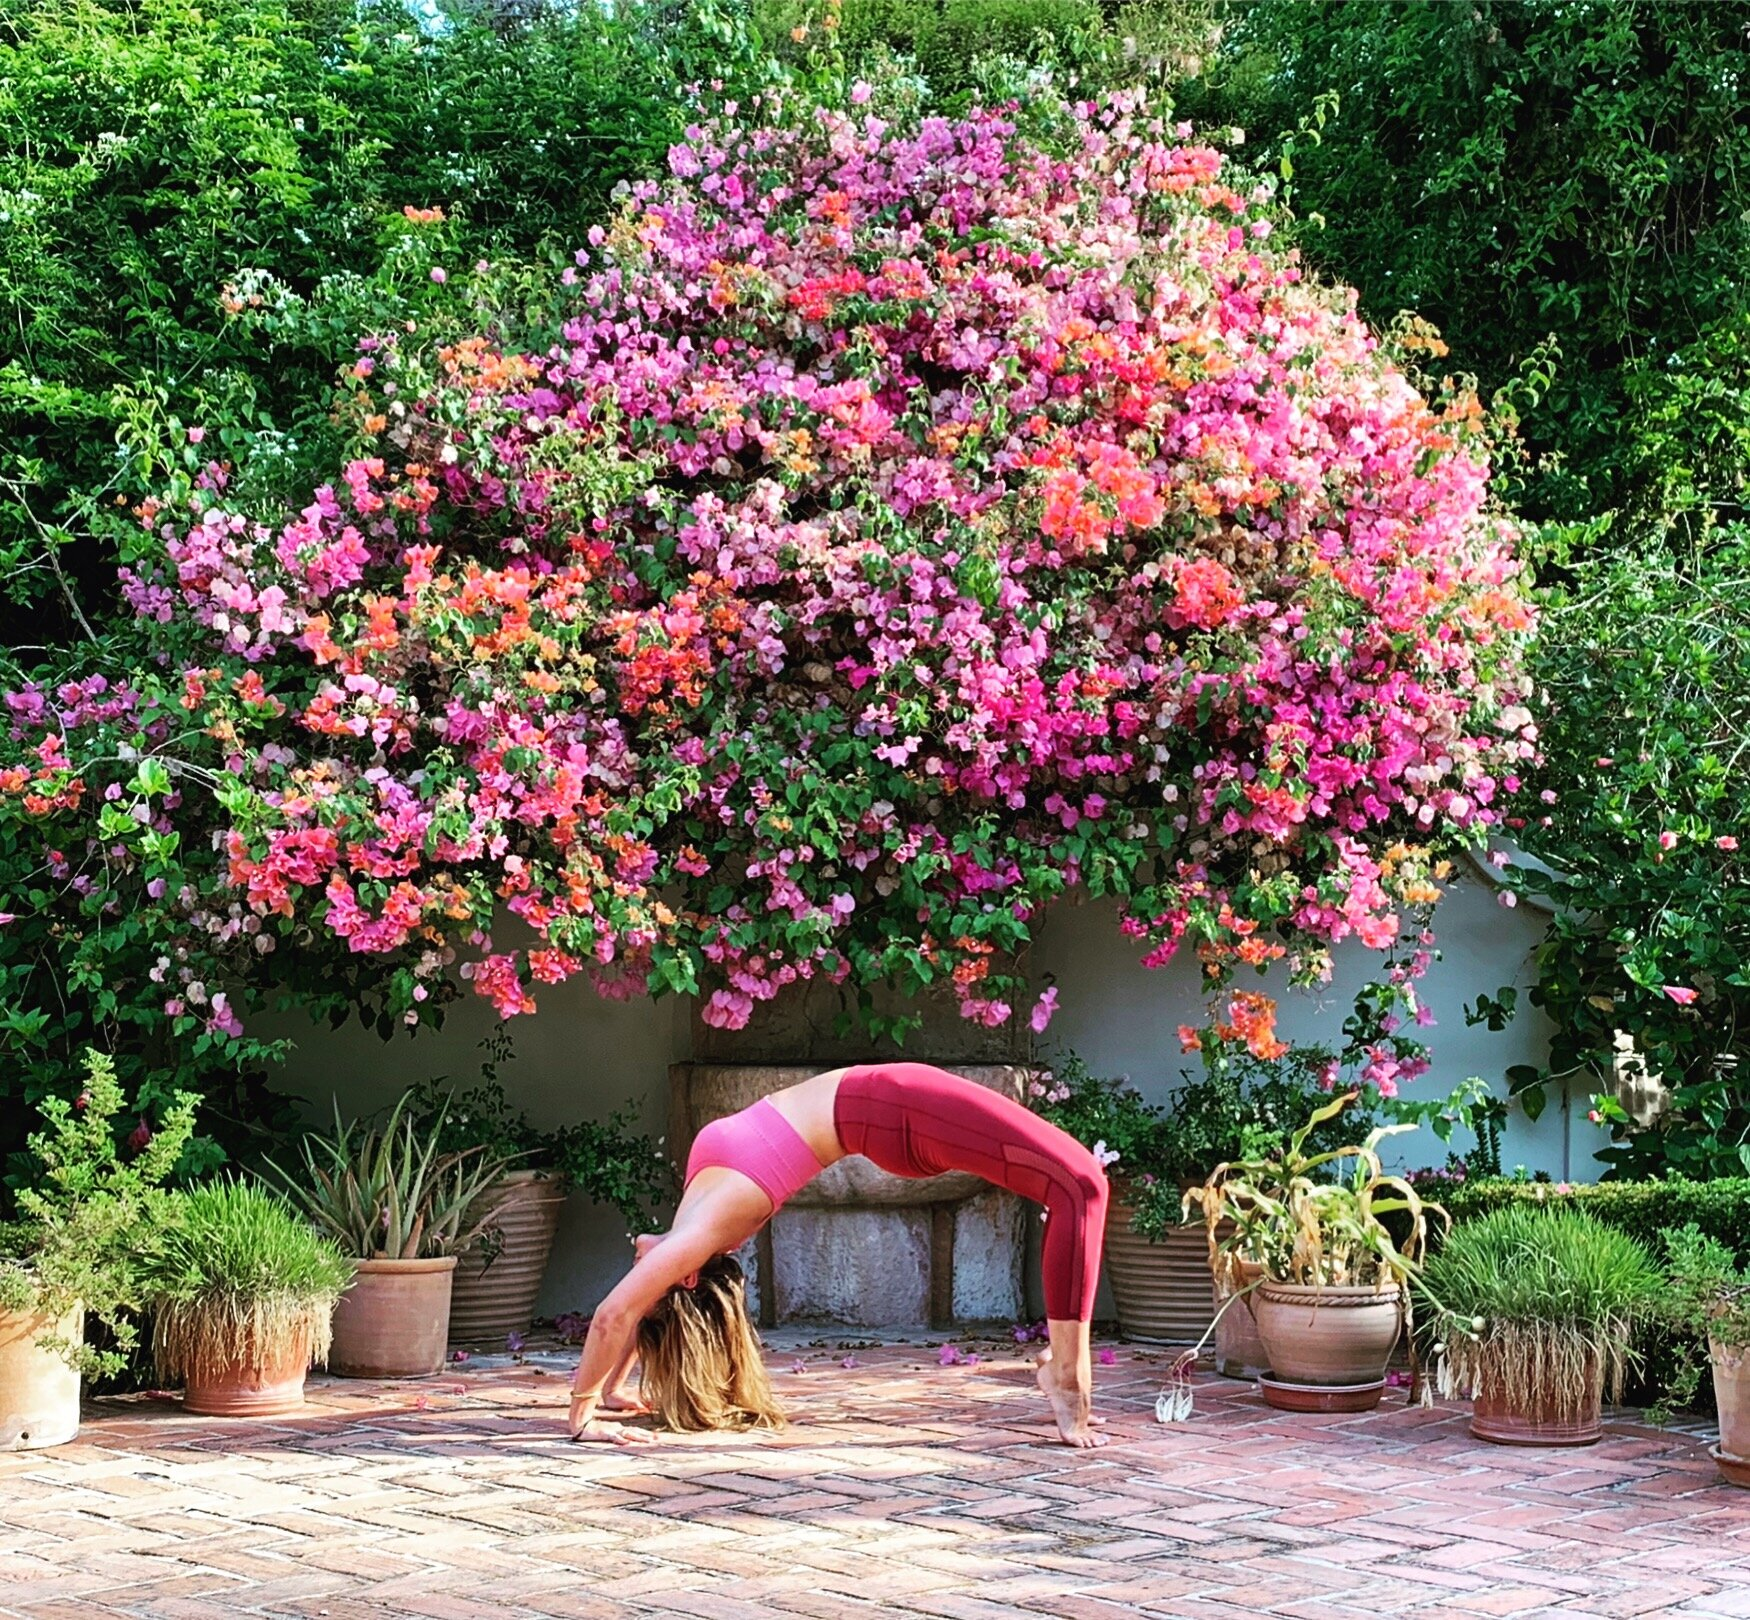 Young Yoga | kids/tieners - Coconut Proefles: €17,95Coconut Pass x 5 lessen: €84,95Coconut Pass x 10 lessen: € 165,95